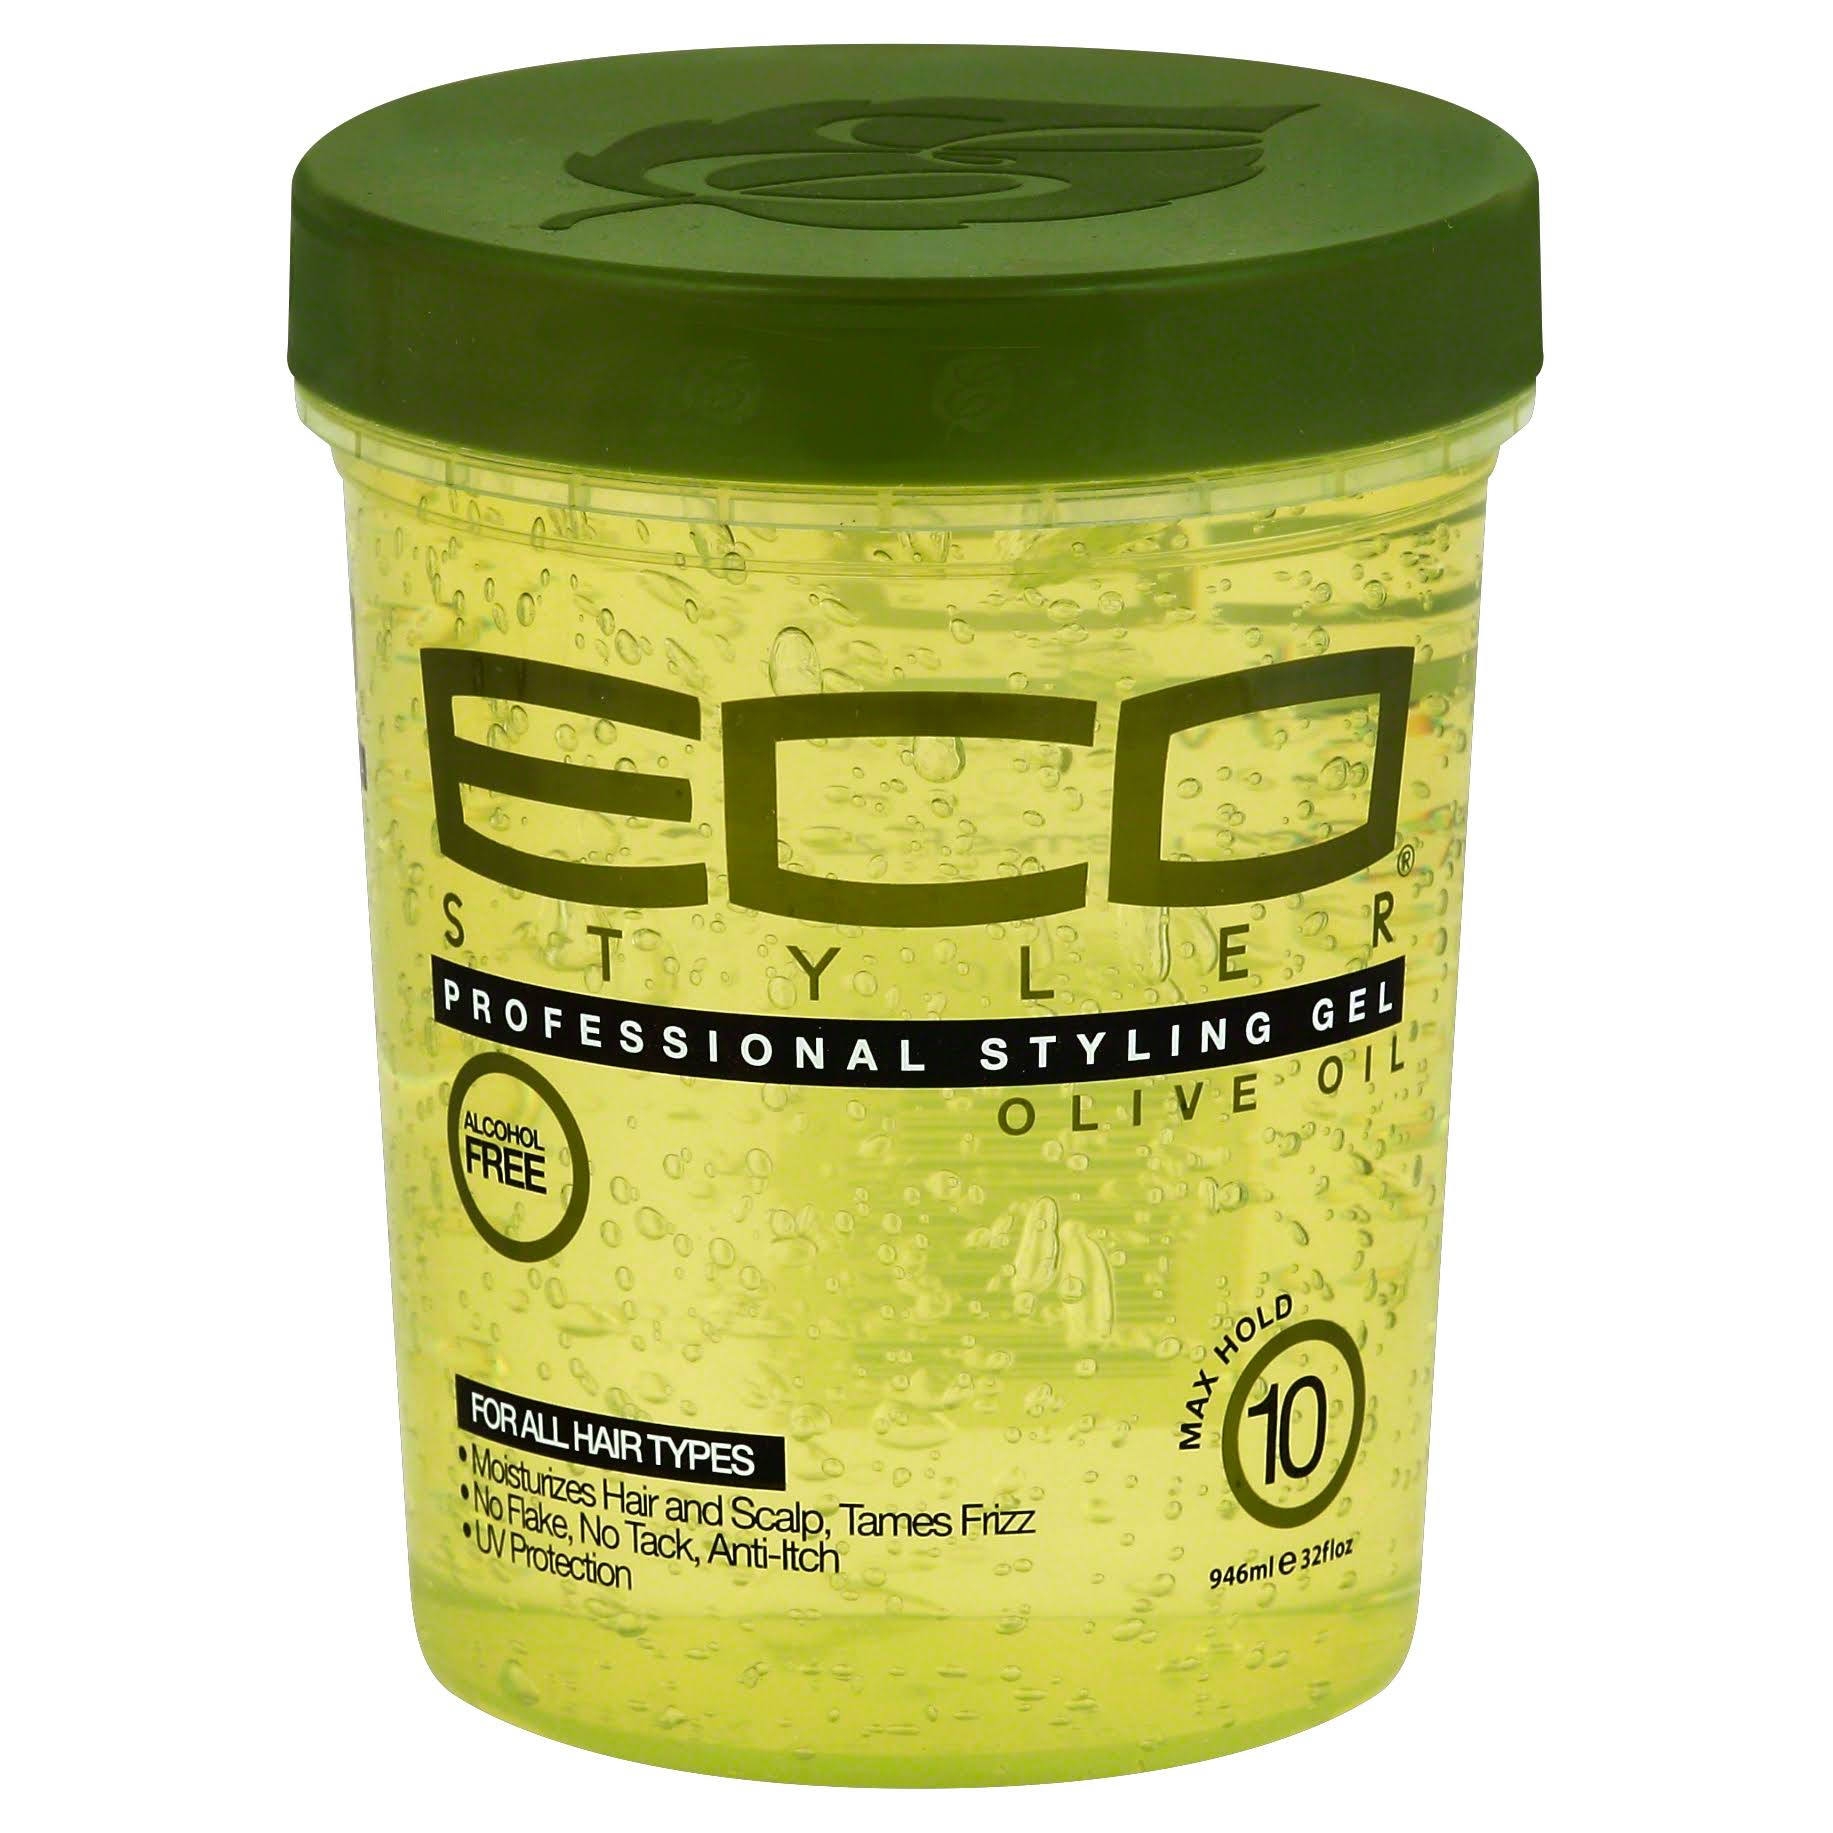 Eco Style Professional Olive Oil Styling Gel - 946ml